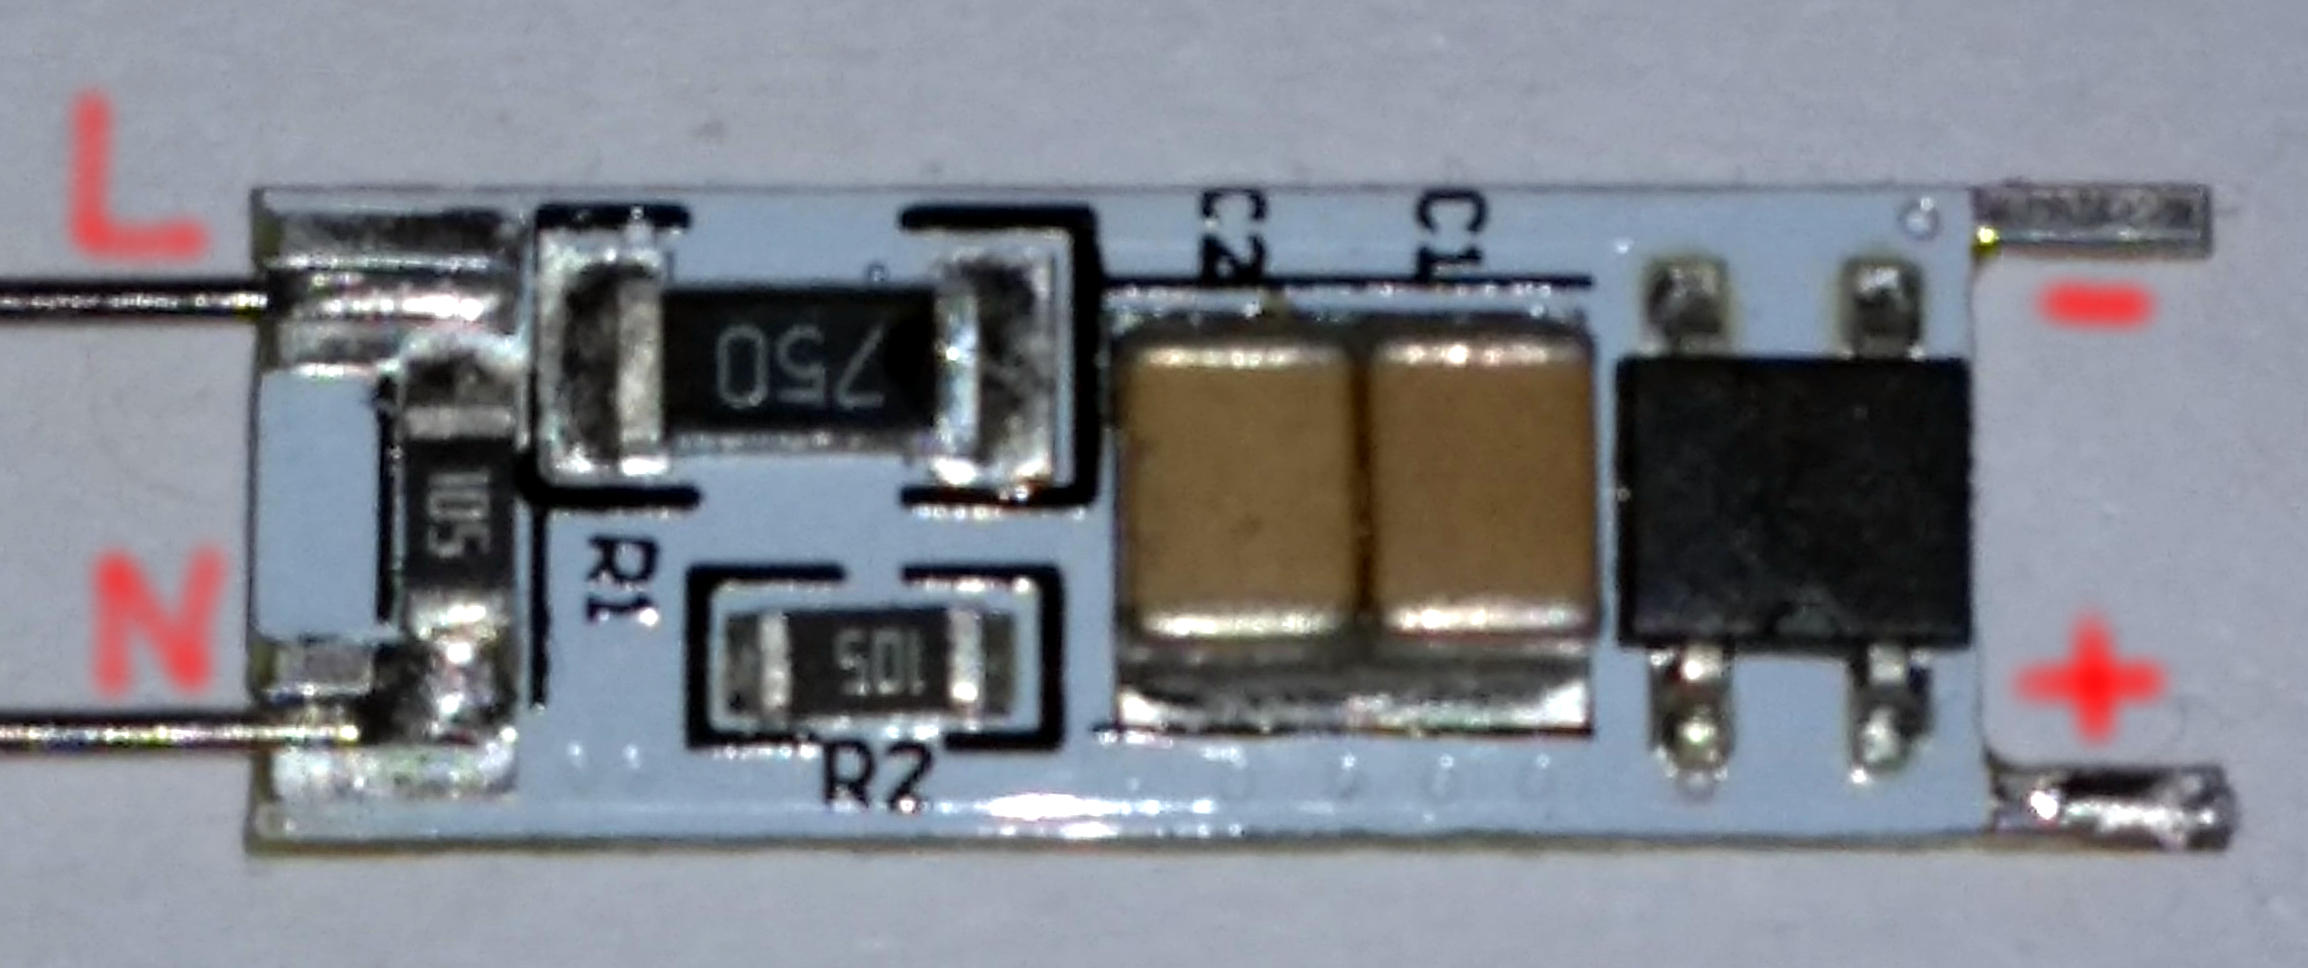 rectifier pcb